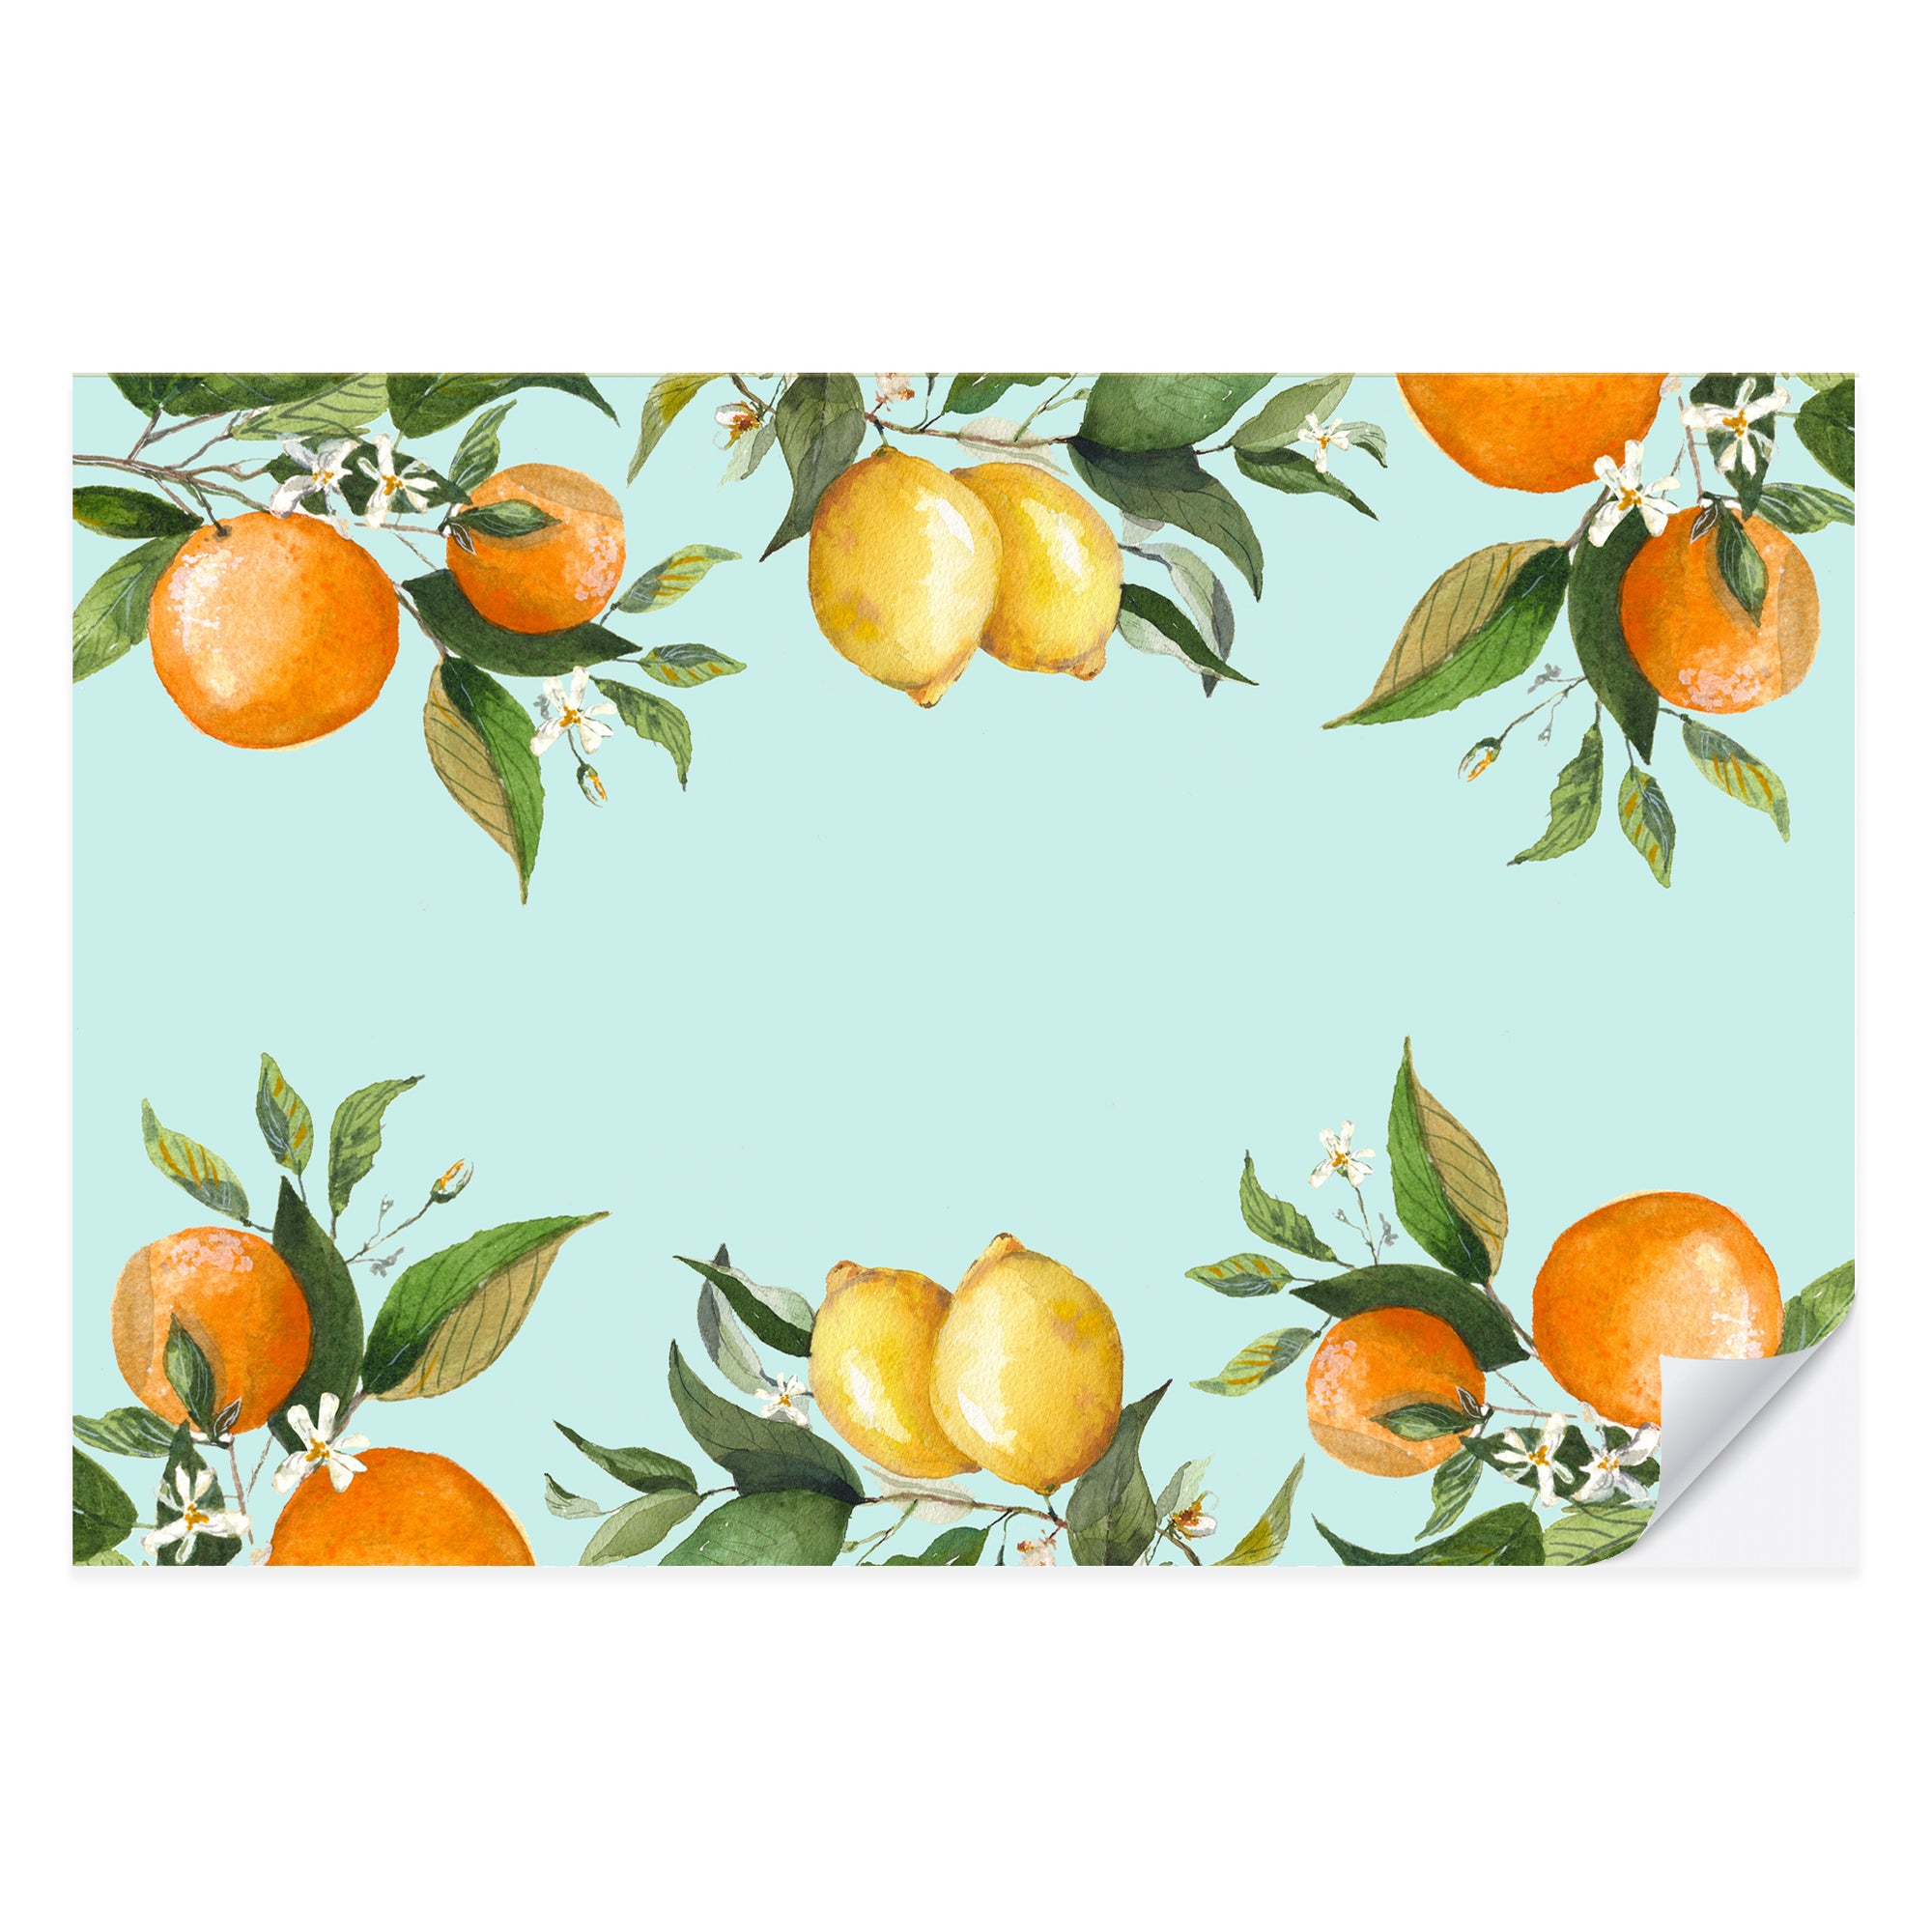 Zesty Citrus Placemat Pad